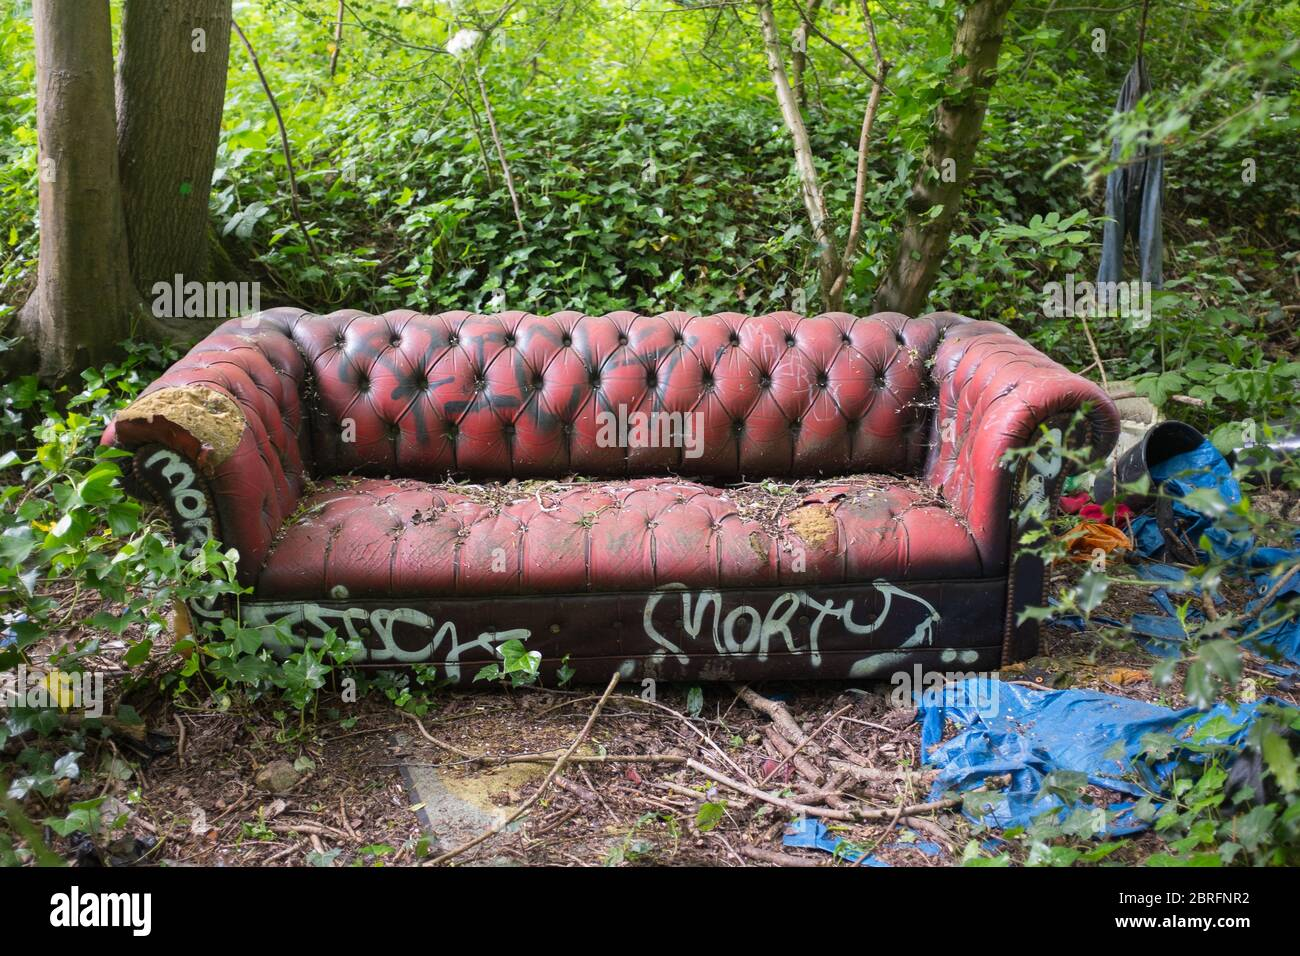 Junk Furniture High Resolution Stock Photography And Images Alamy